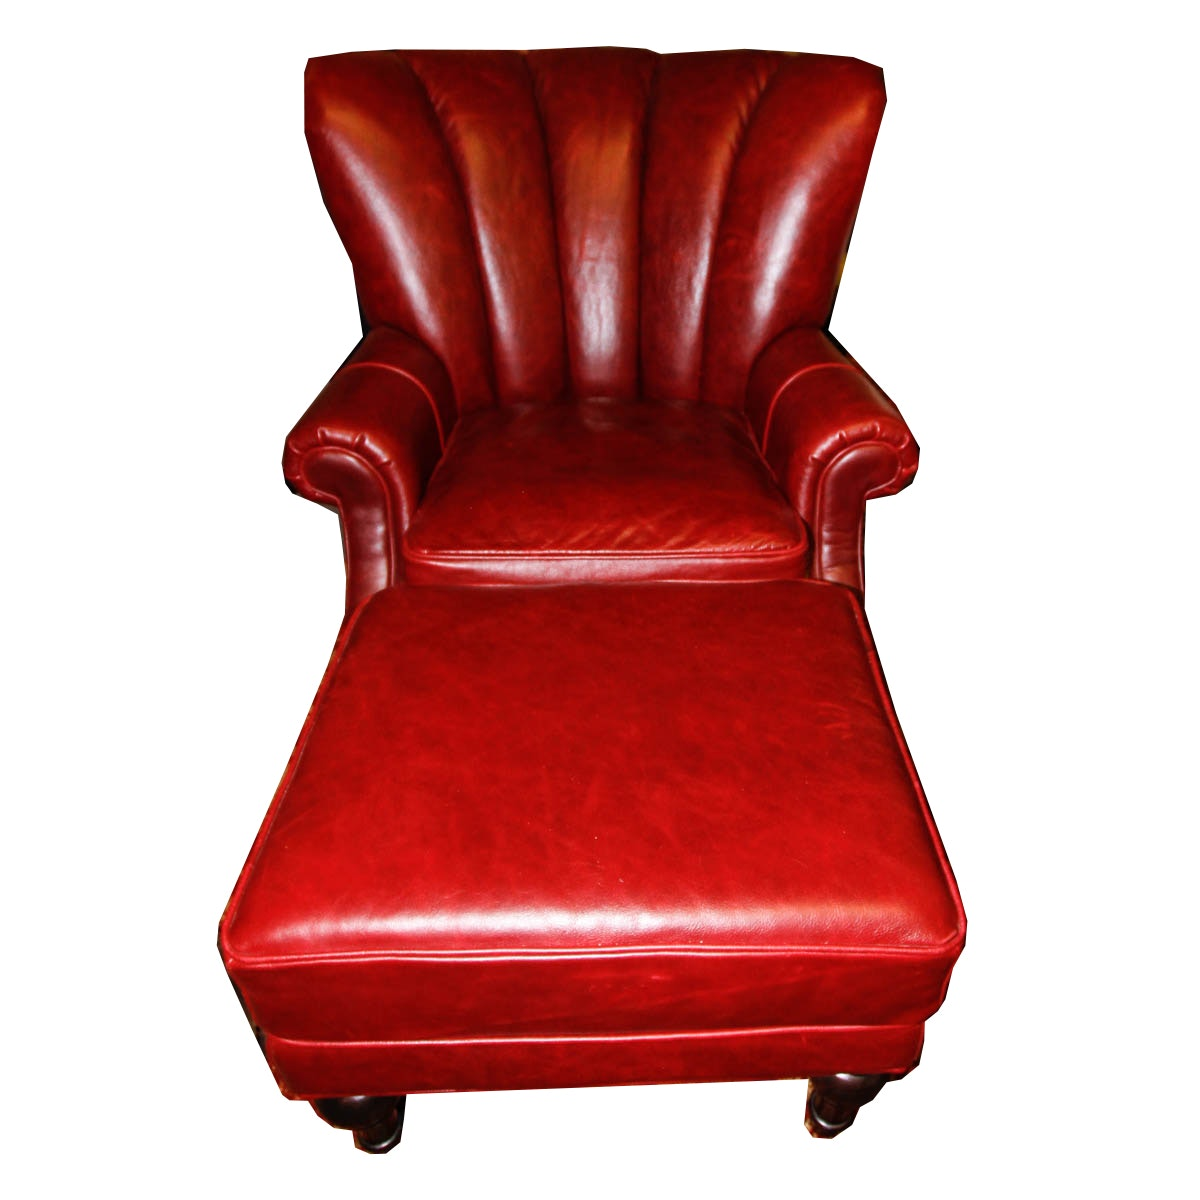 Red Leather Arm Chair and Ottoman